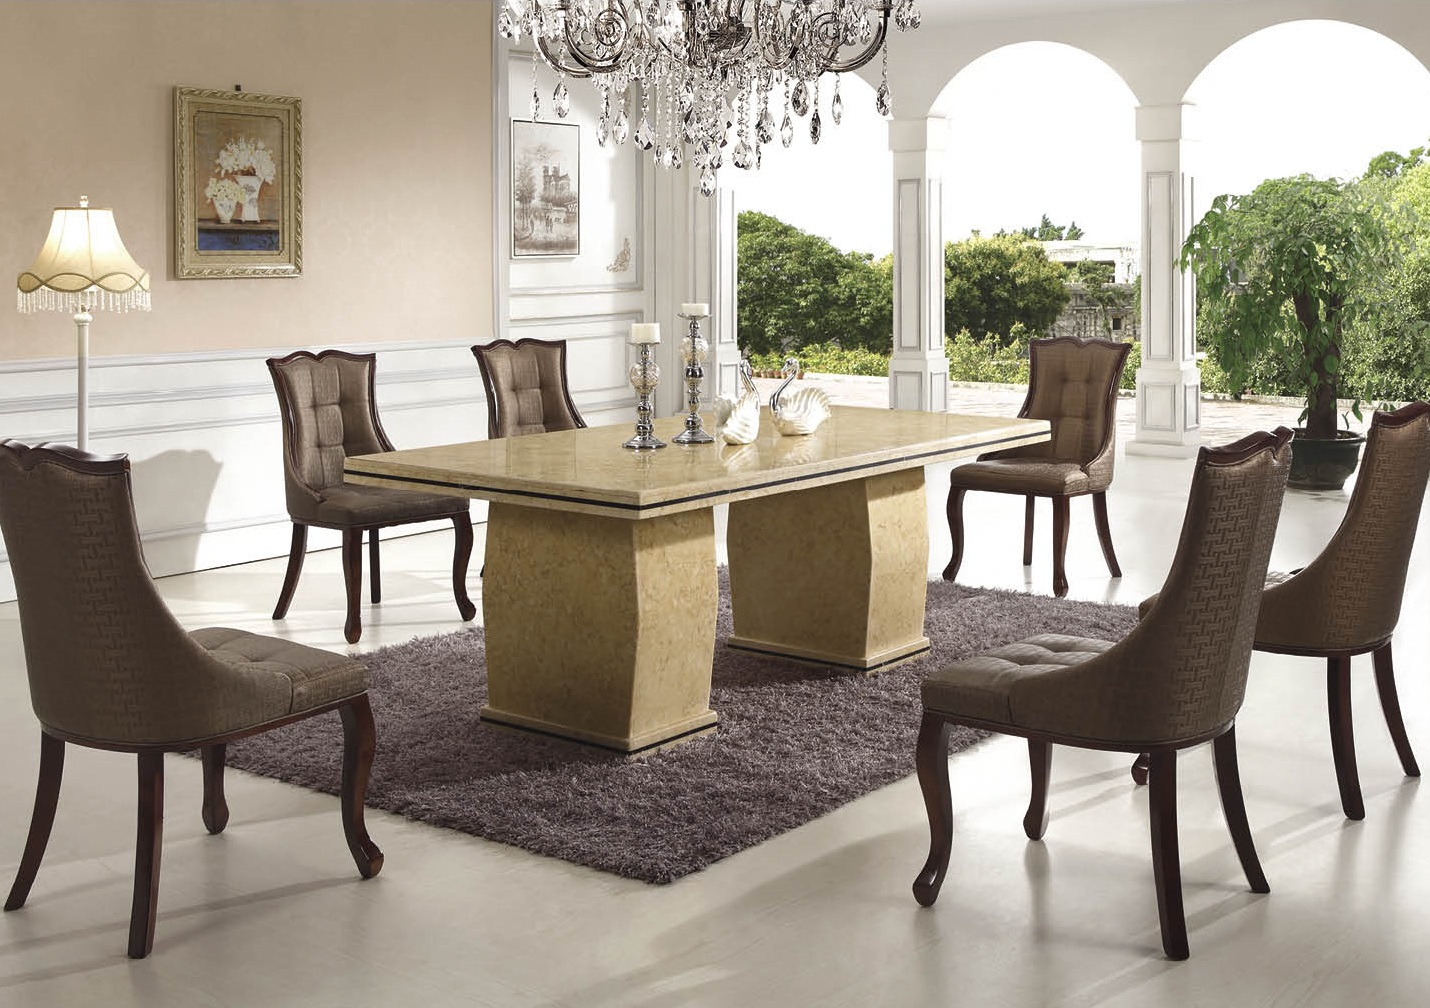 catania marble dining table with 8 chairs marble king. Black Bedroom Furniture Sets. Home Design Ideas